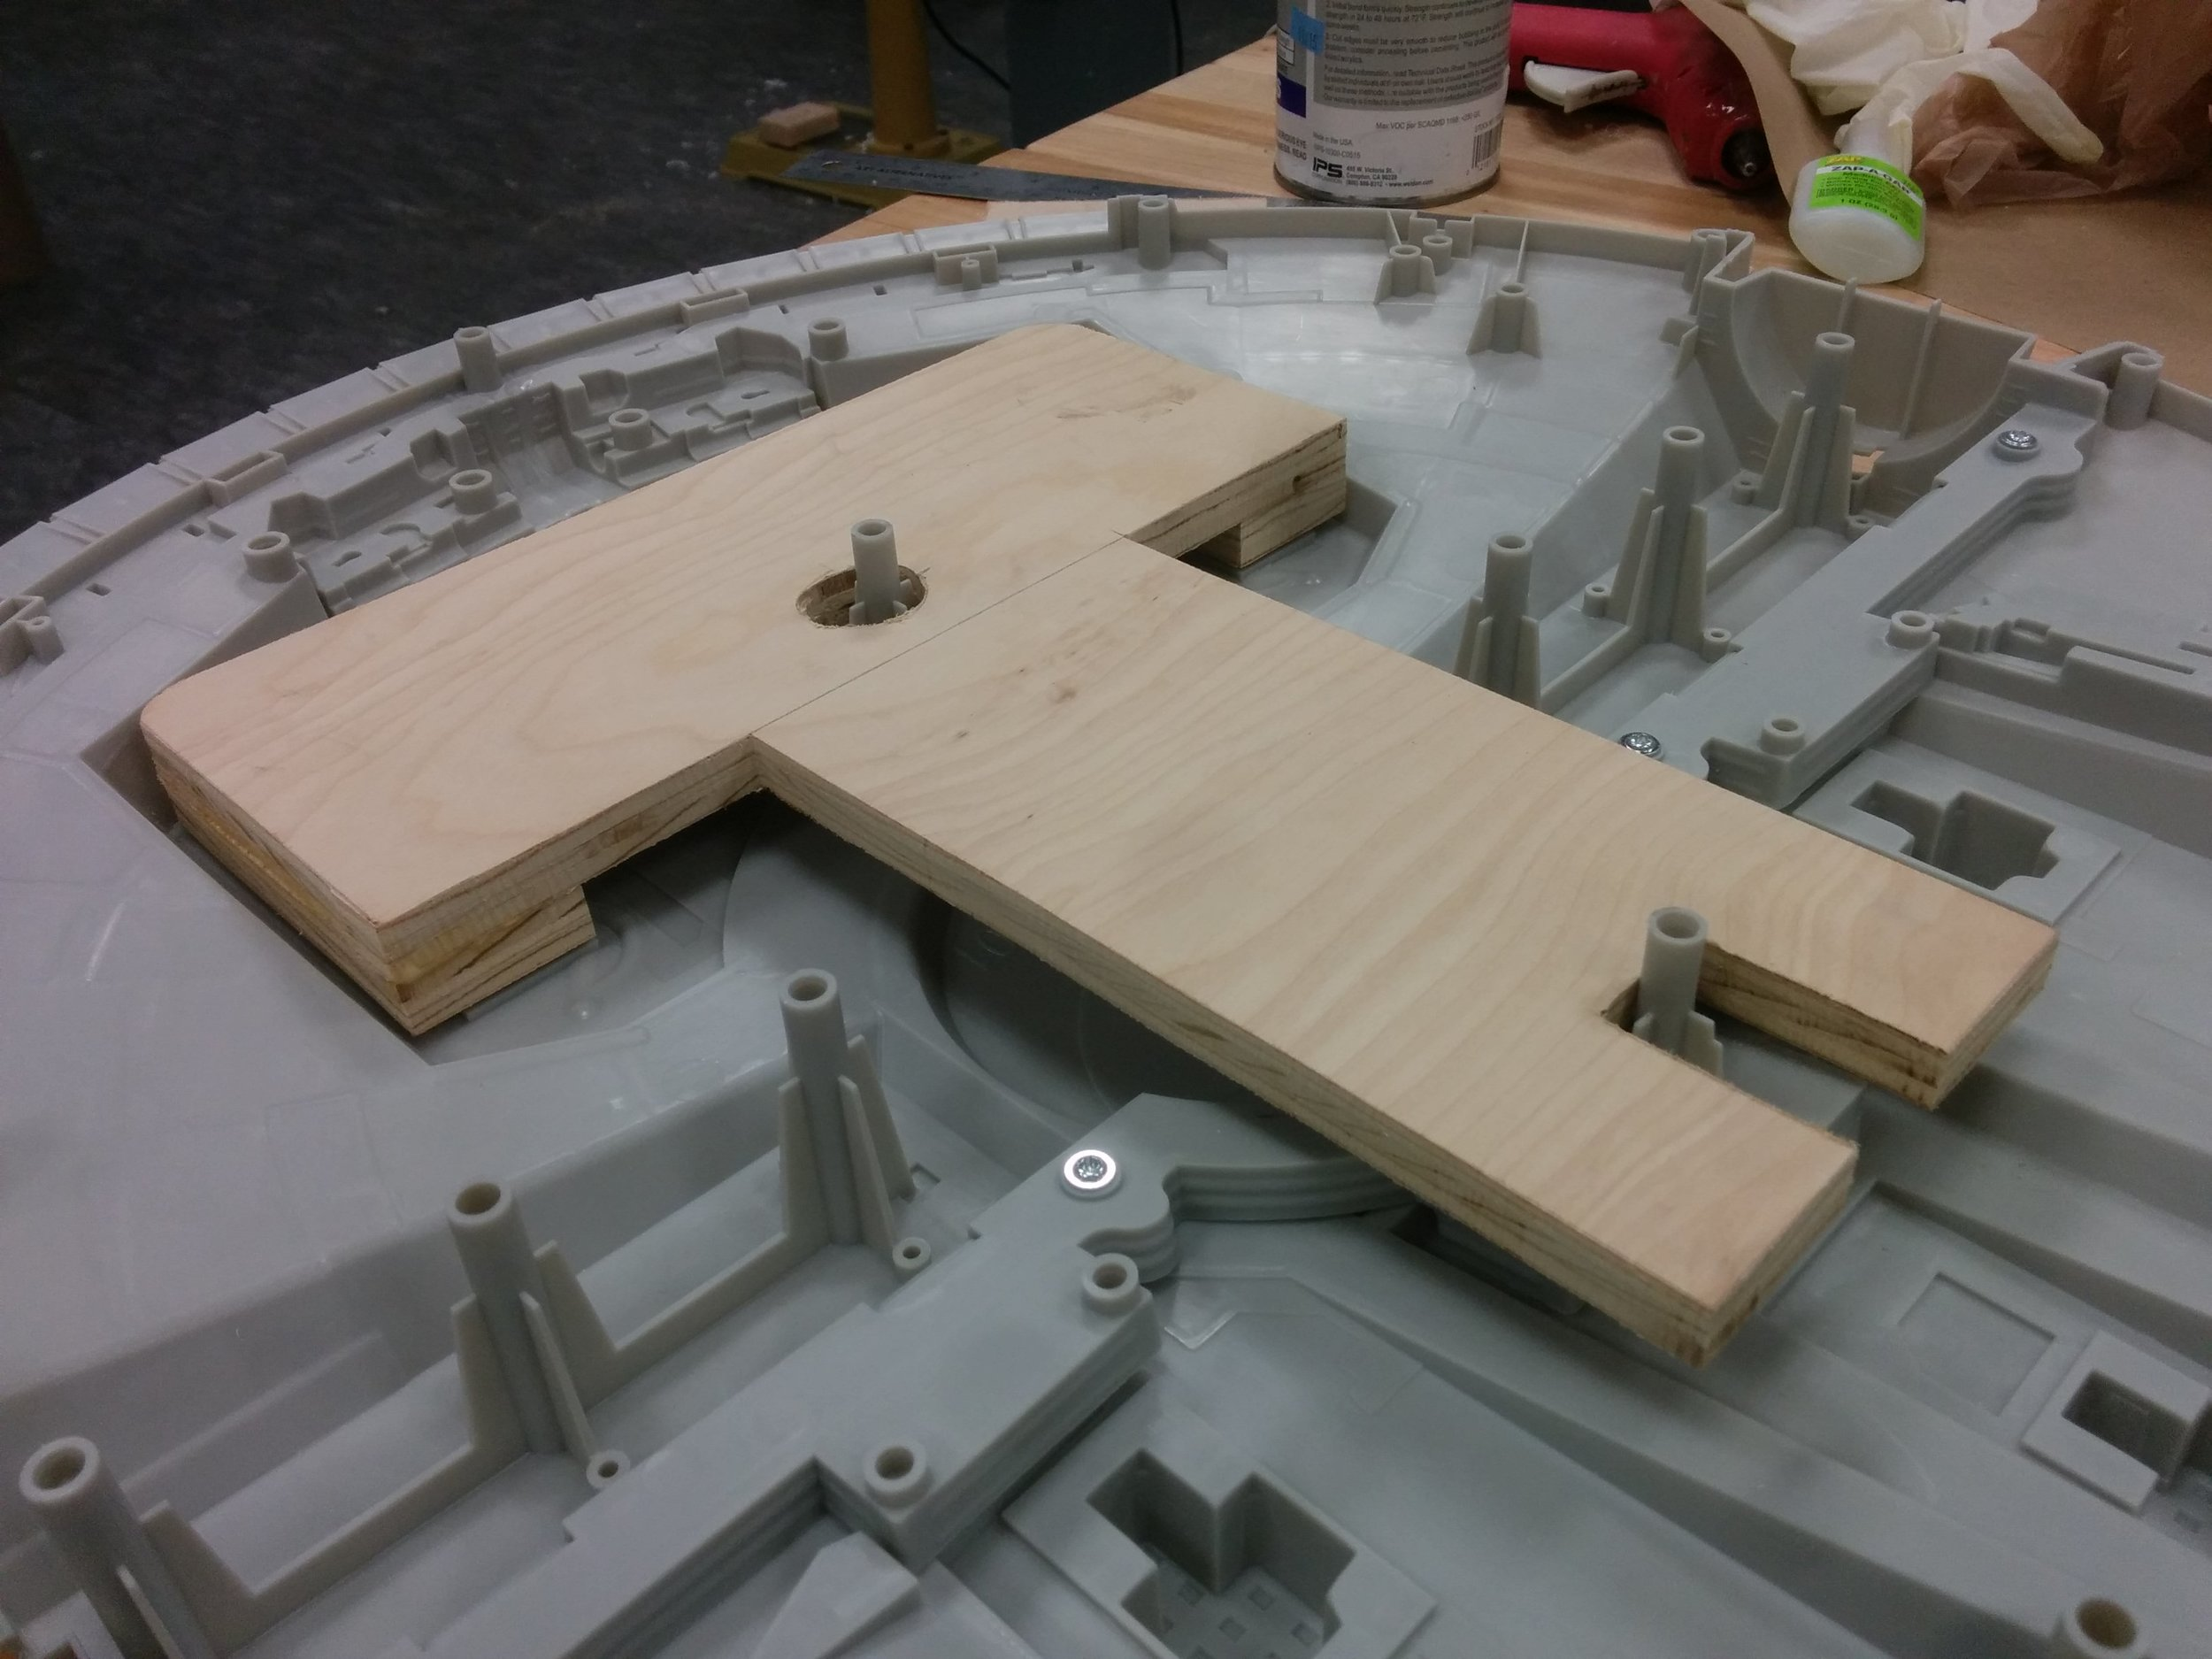 Birch ply base fit inside the toy model to add stability and balance during animation.